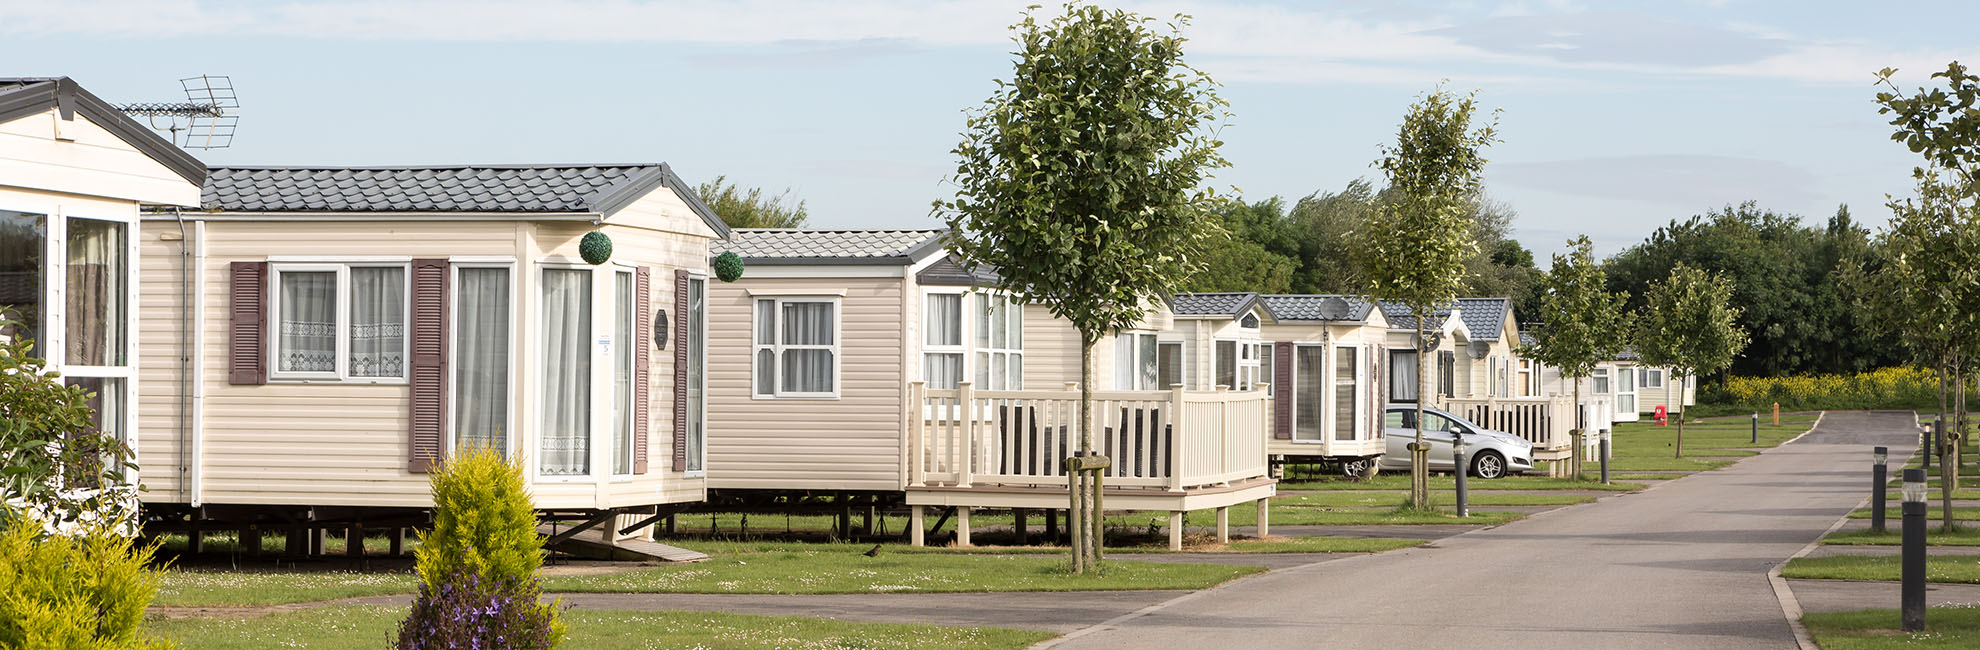 Caravans at Skipsea Sands Holiday Park